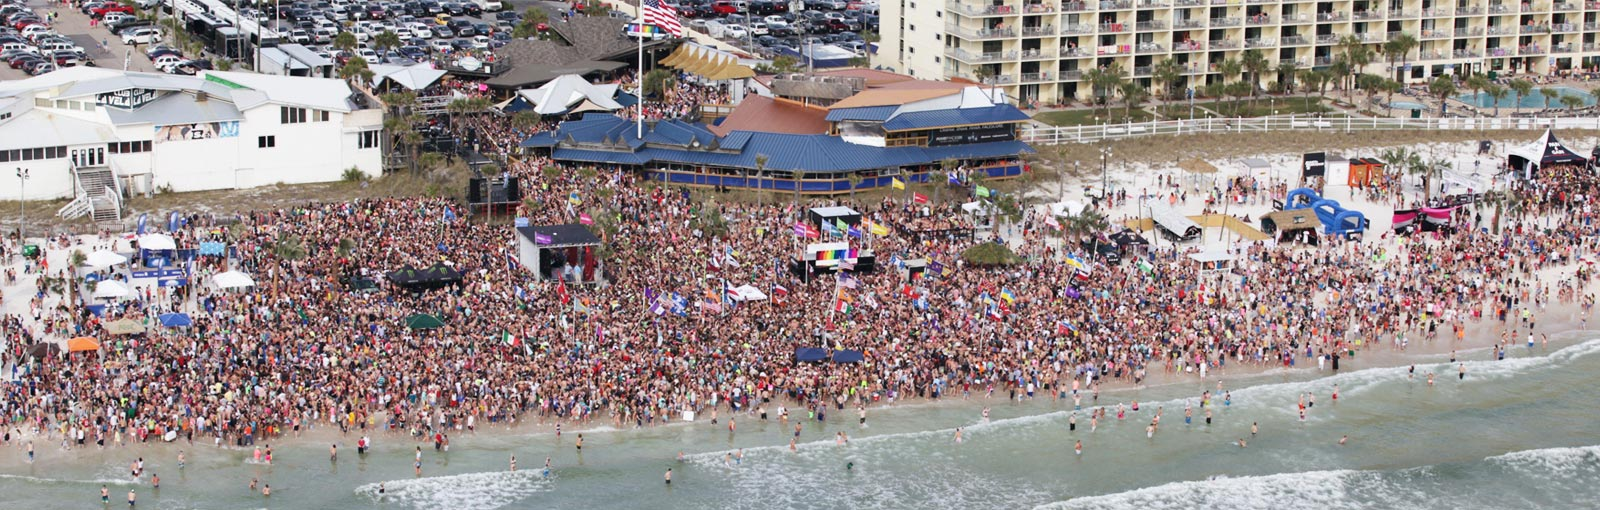 Panama City Spring Break